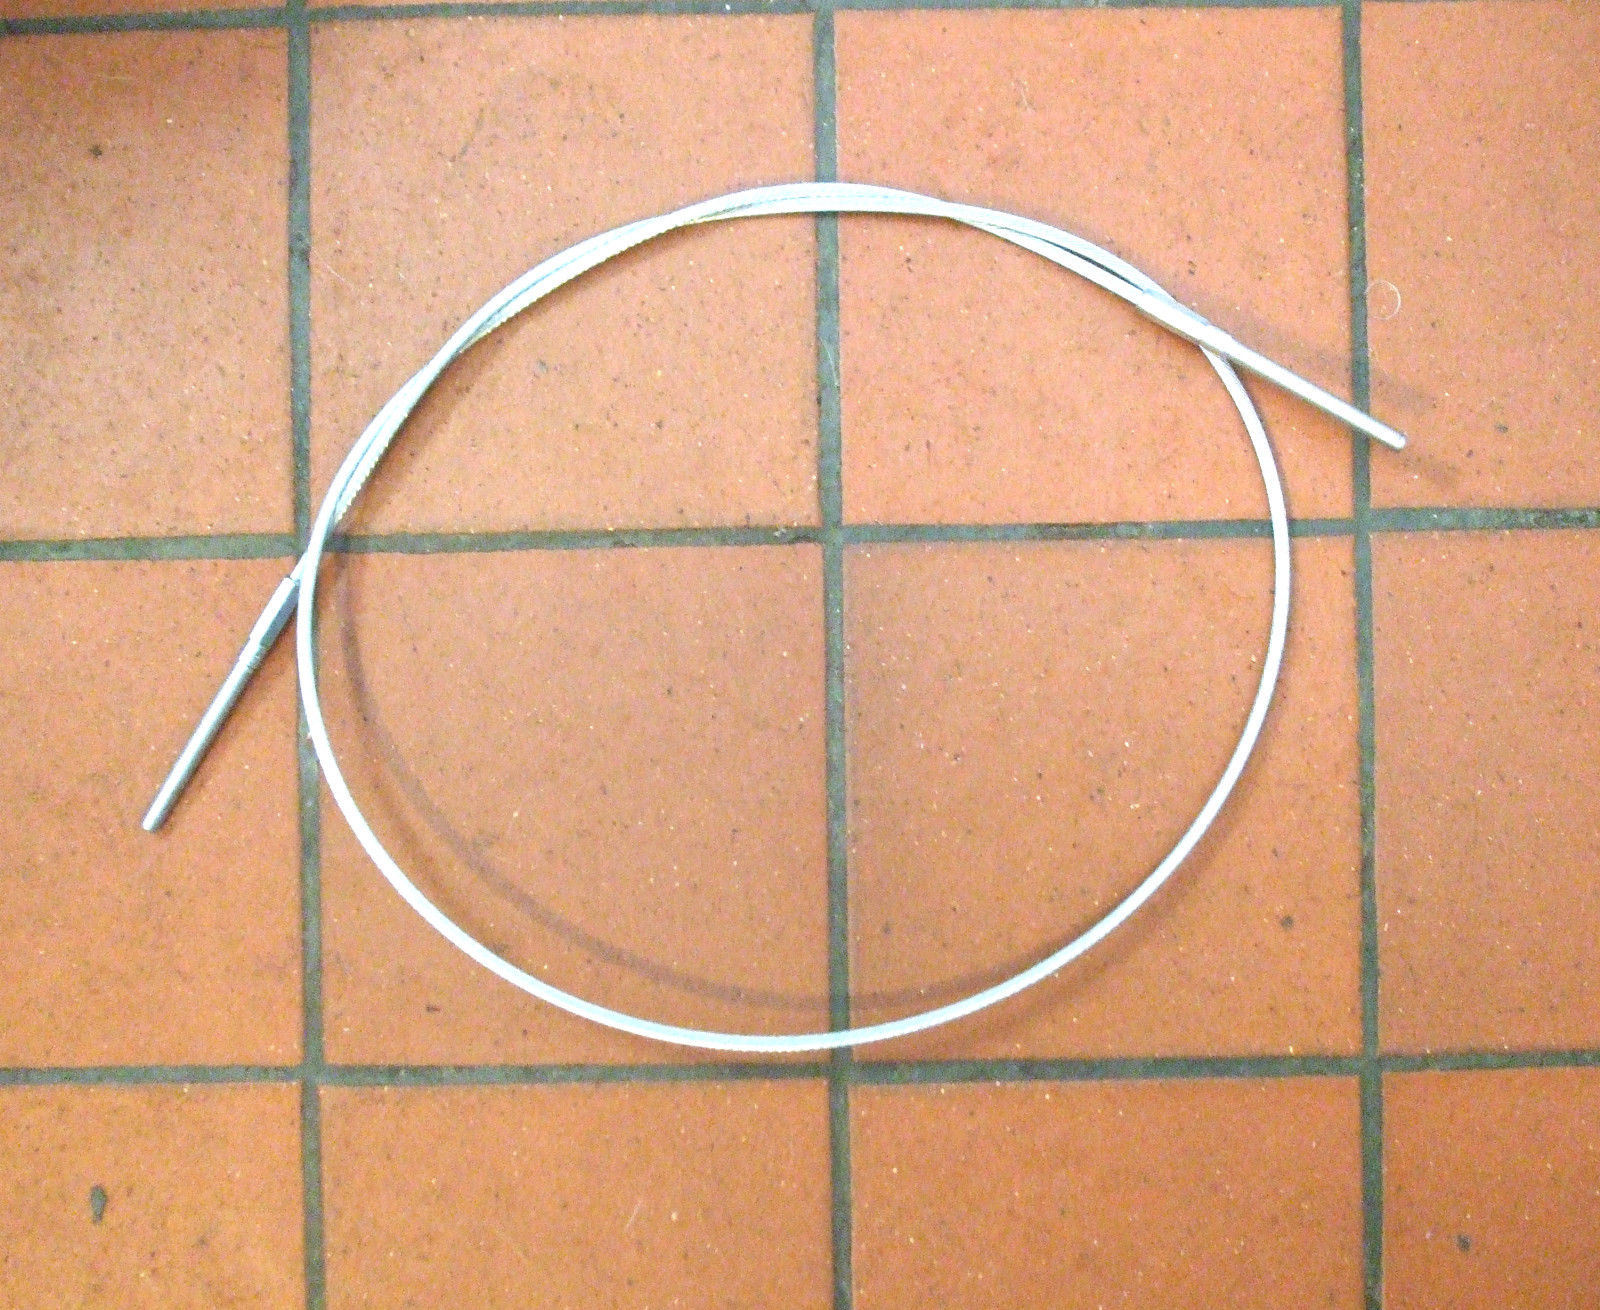 REAR HANDBRAKE CABLE (Triumph Spitfire Mk1 Mk2 Mk3 Mk4 Early) (1962- 73 Only)